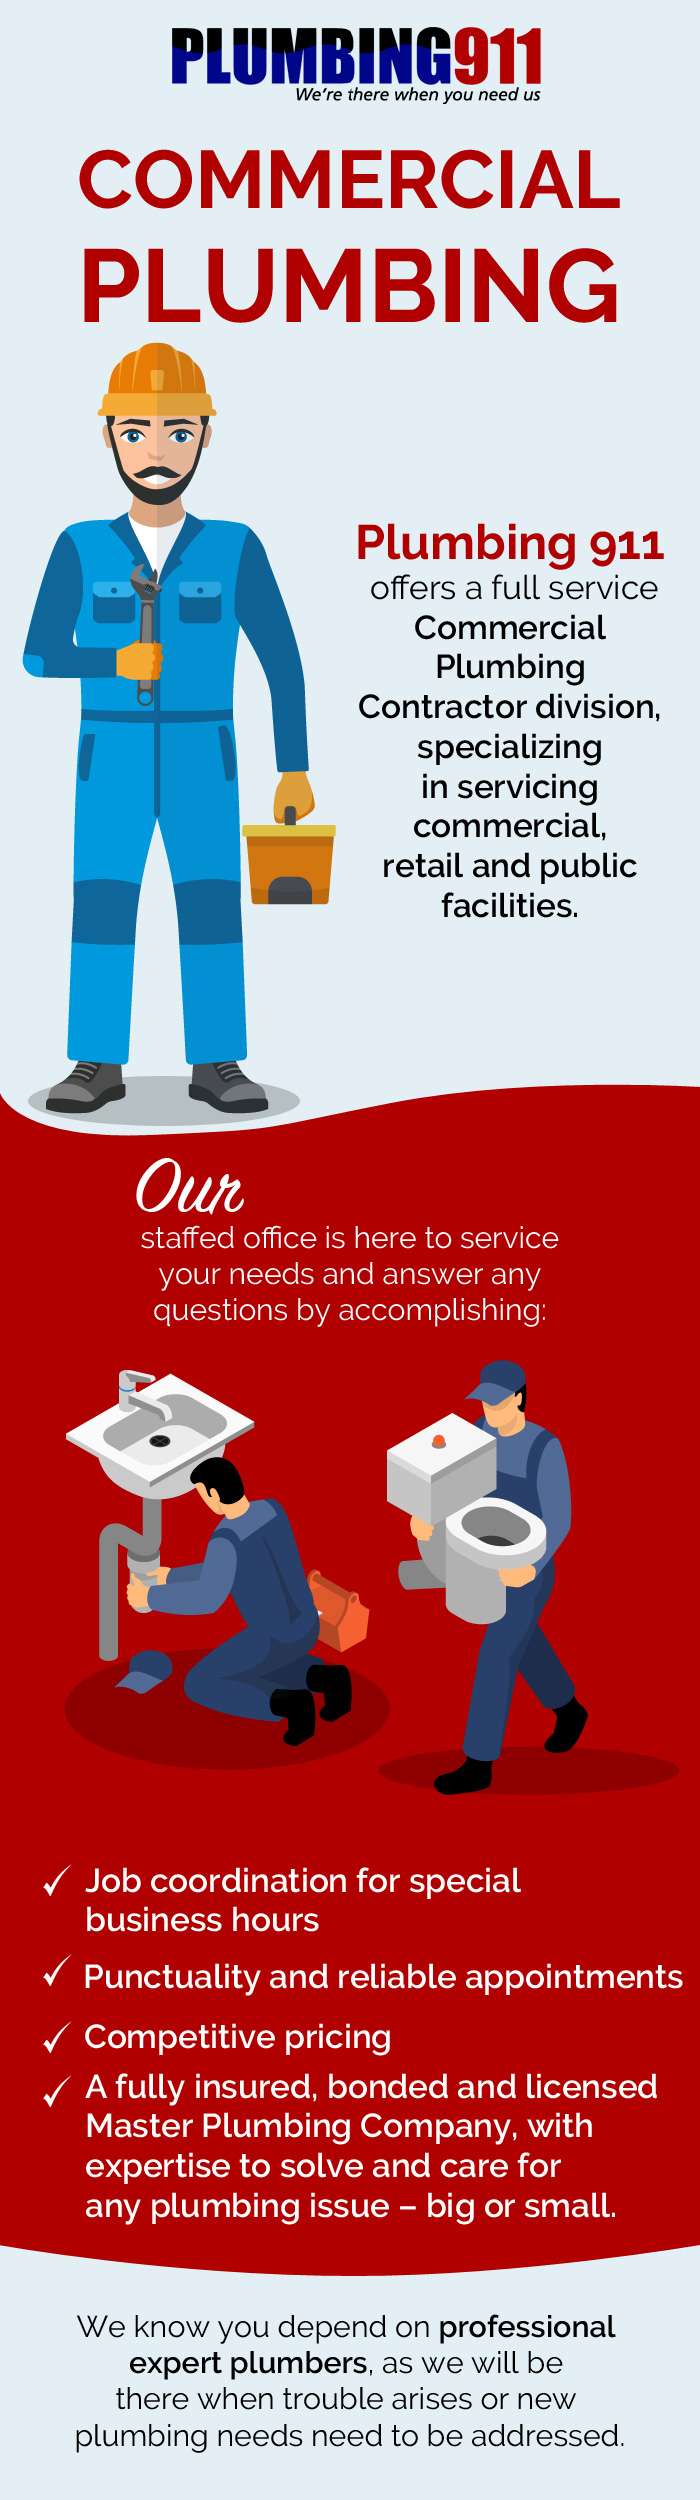 Contact Plumbing 911 for Commercial Plumbing Services in Norton, OH